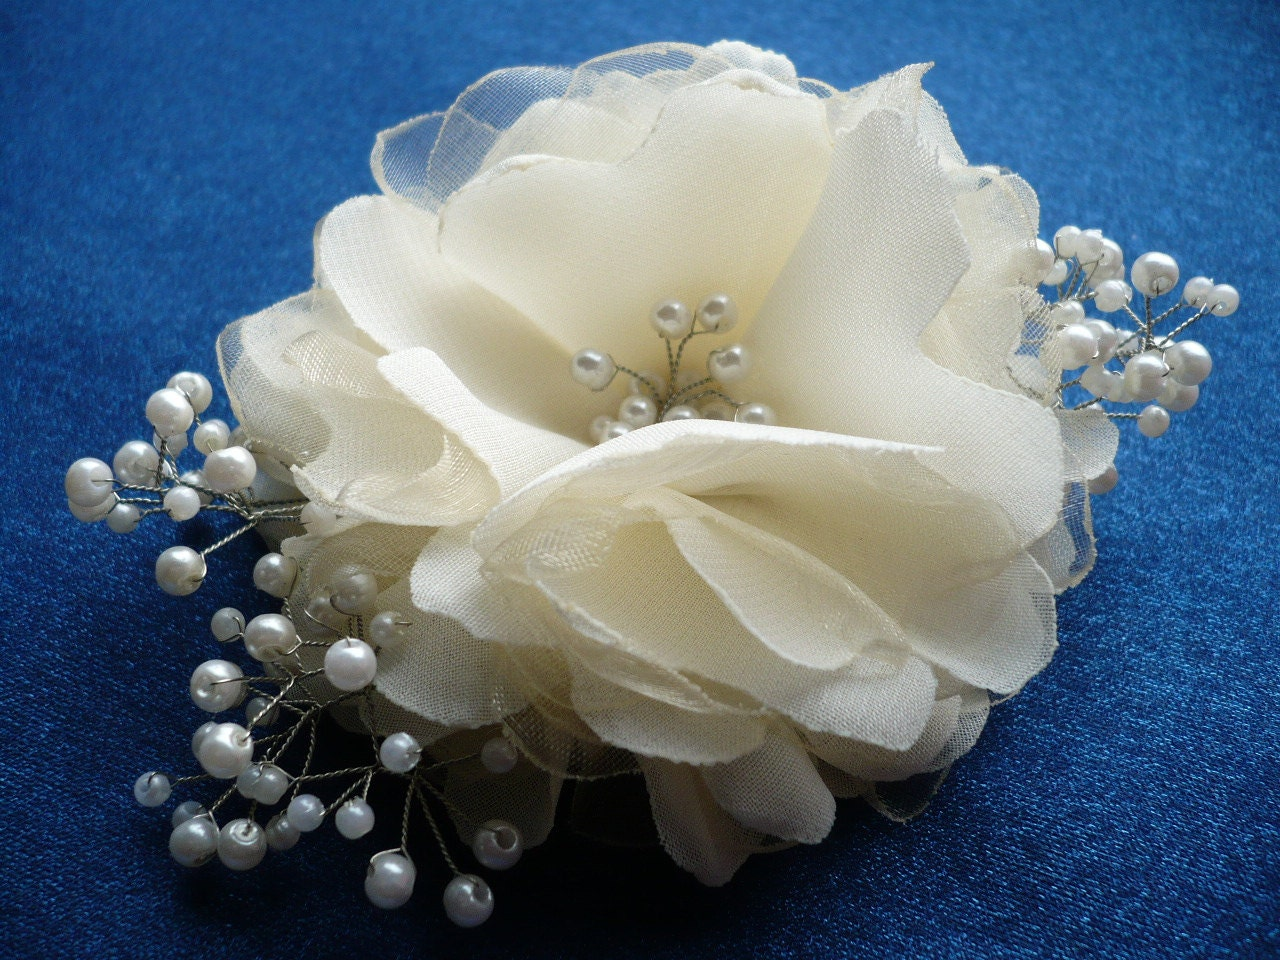 Bridal Ivory Flower Hair Accessories : Ivory hair clip flower bridal accessories